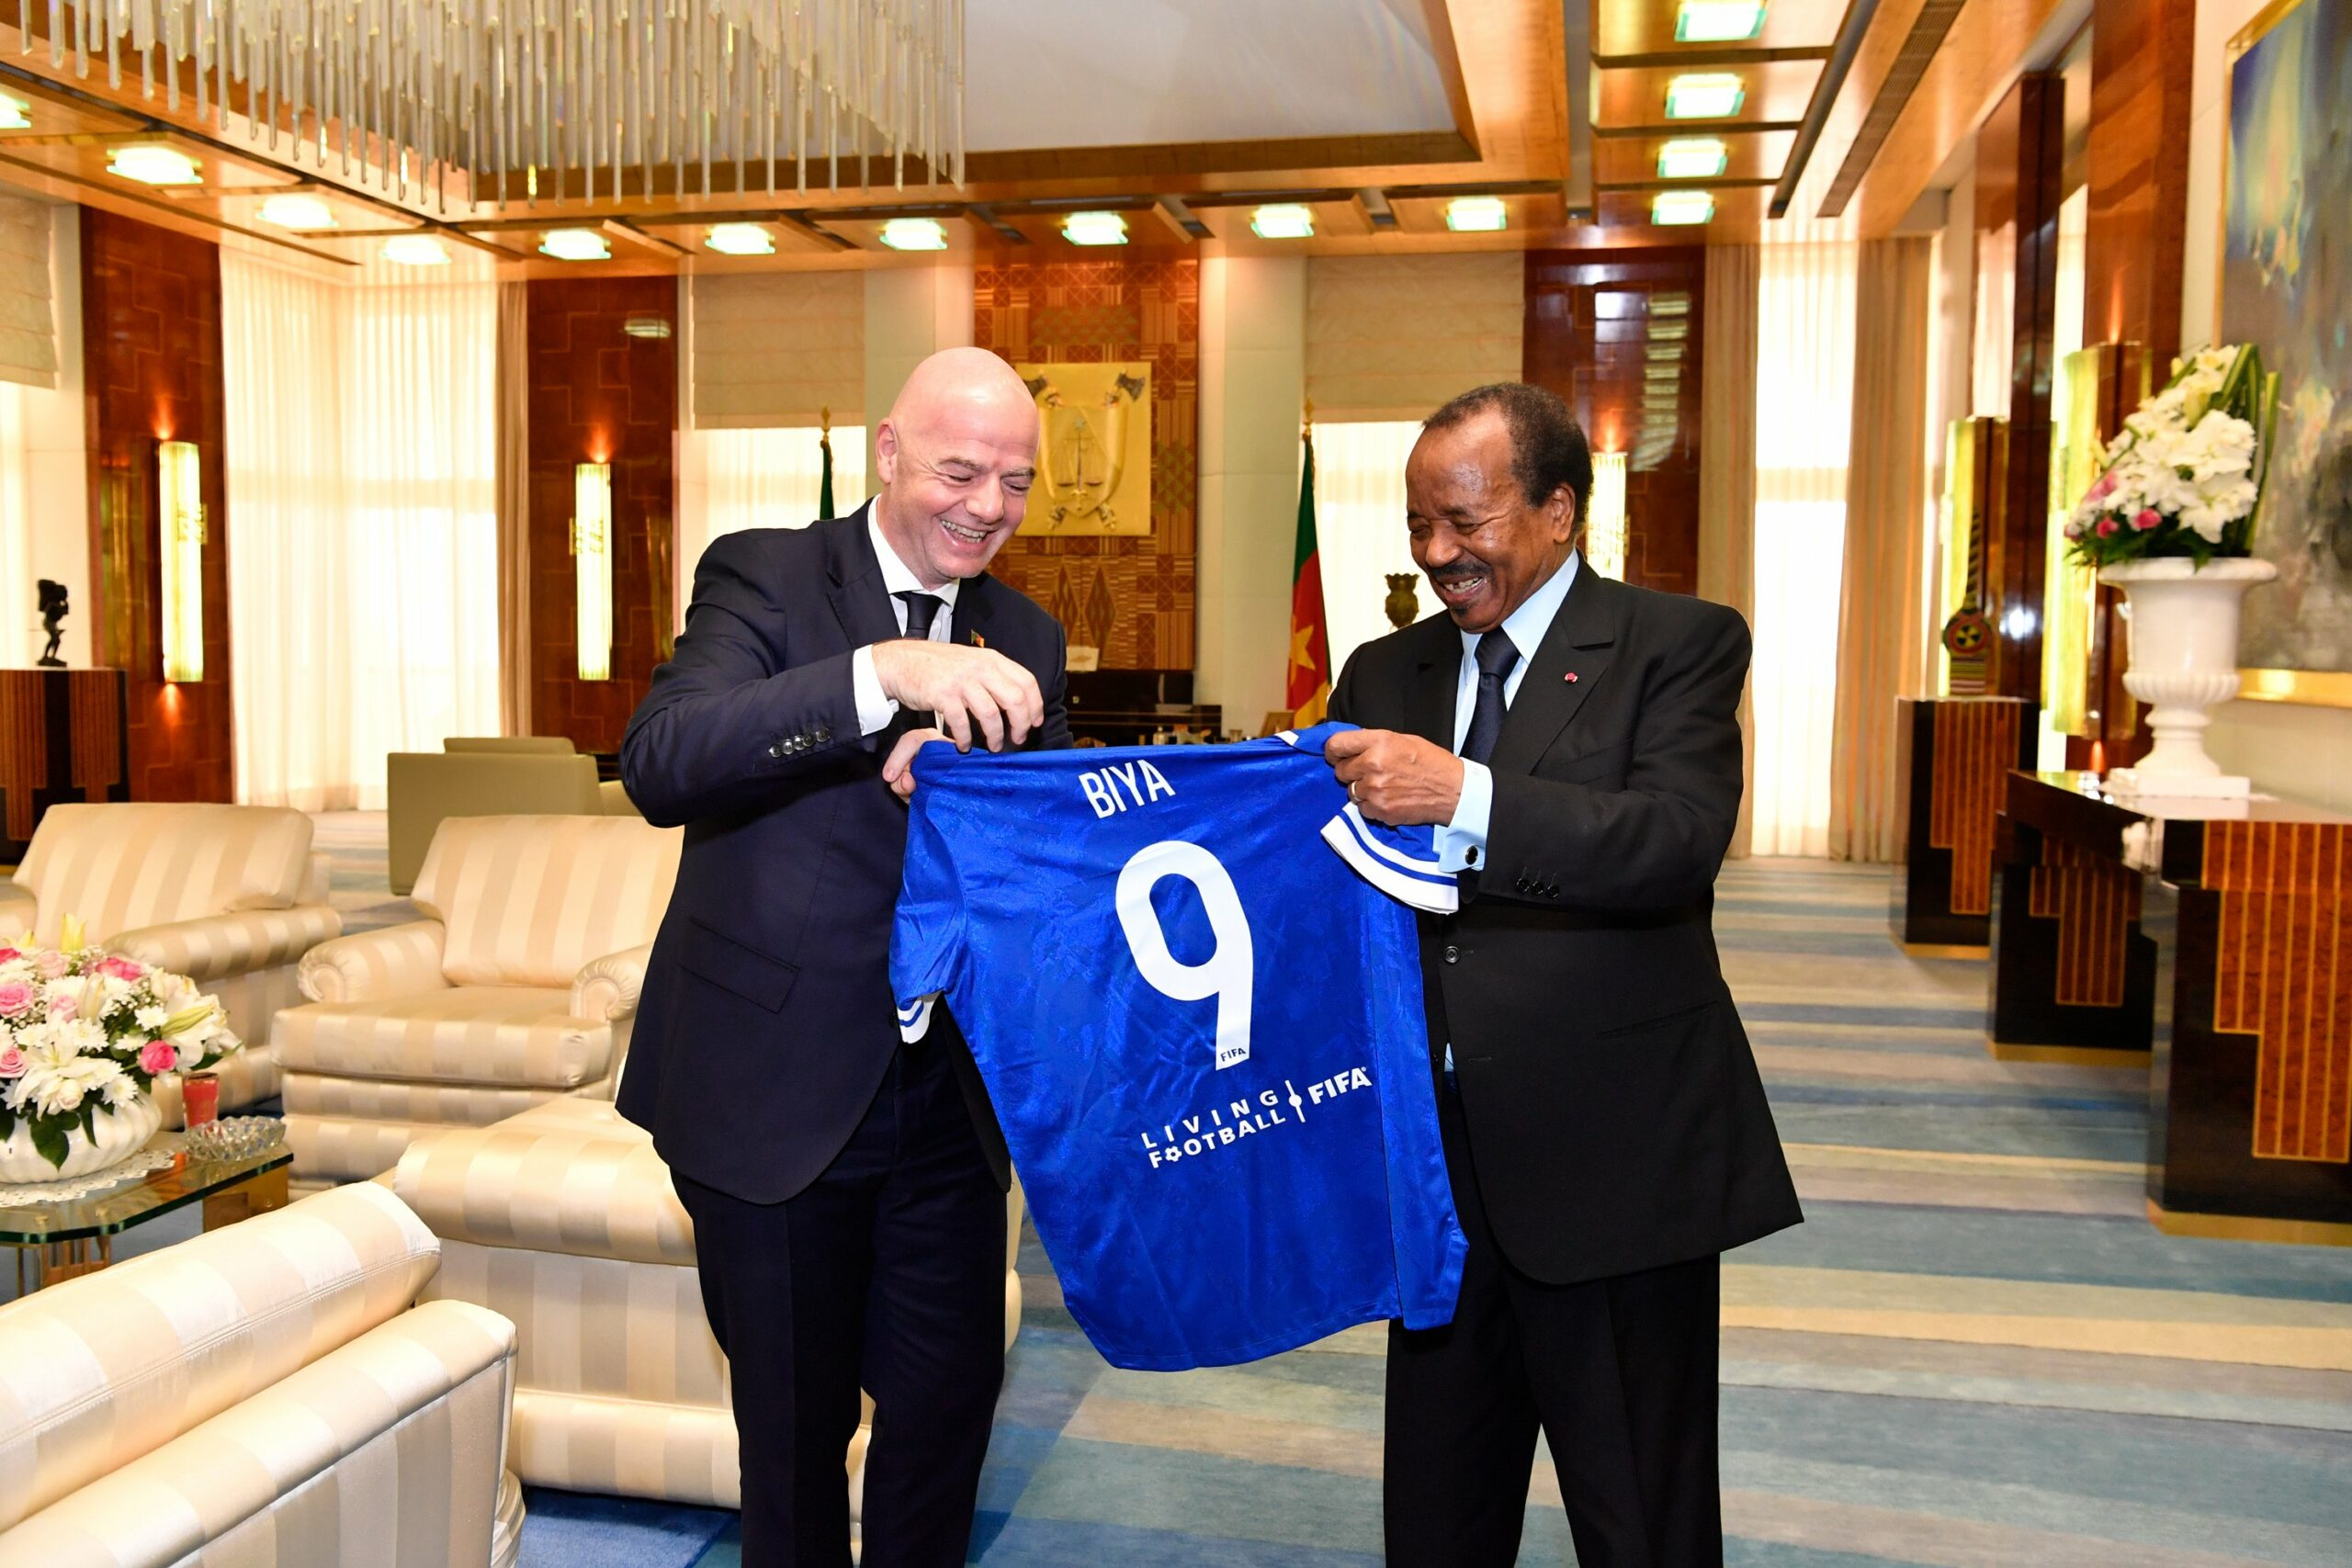 Cameroonian president discusses football development with FIFA president